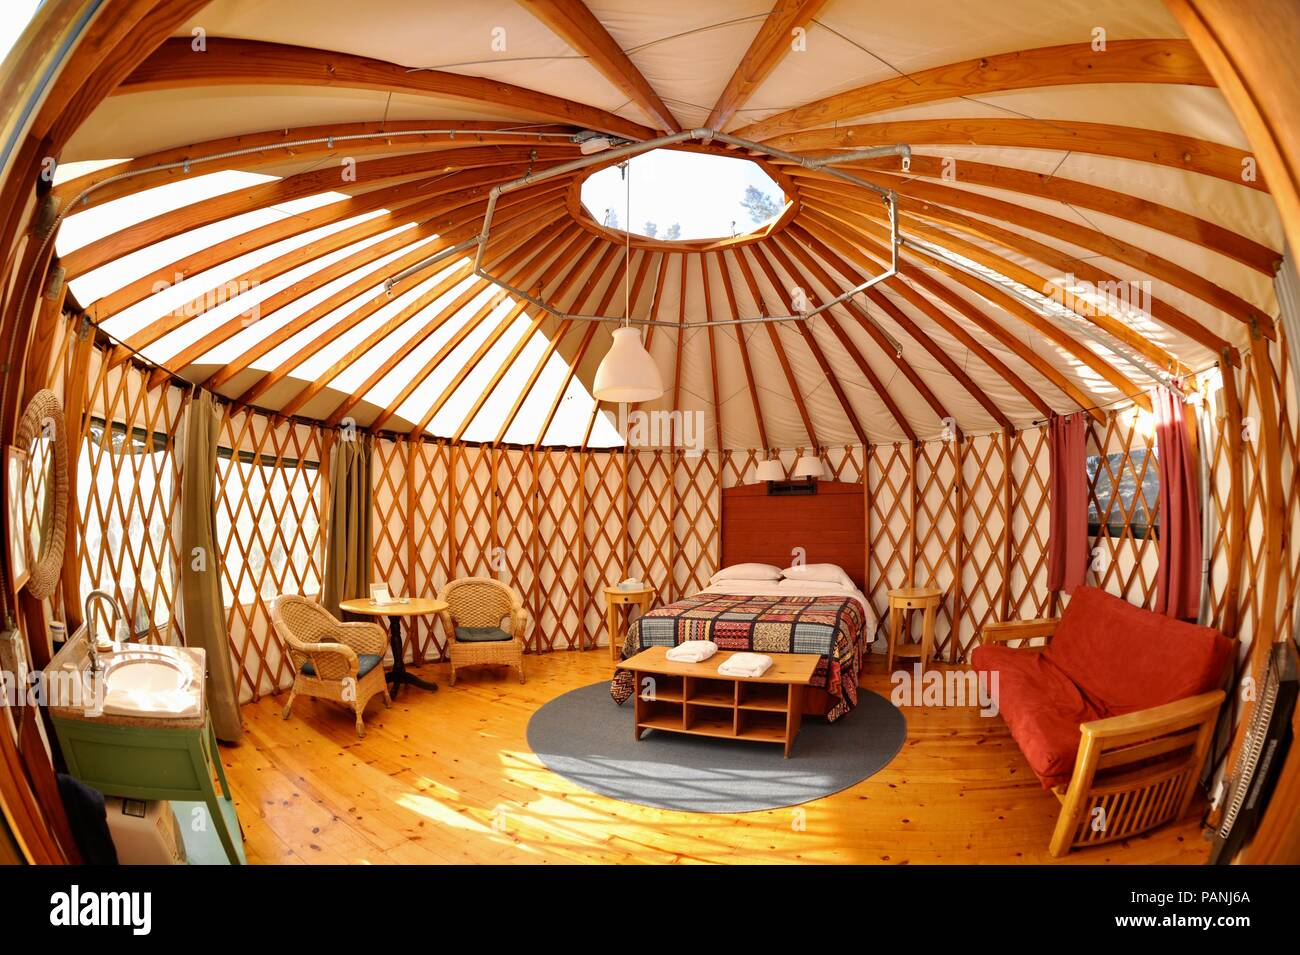 Fabric And Wood Framed Yurt Structures For Luxurious Upscale Glamping Glamorous Camping At Treebones Resort Big Sur California Usa Stock Photo Alamy Teleprompter & video maker, green screen replacement, motion titling. https www alamy com fabric and wood framed yurt structures for luxurious upscale glamping glamorous camping at treebones resort big sur california usa image213146258 html